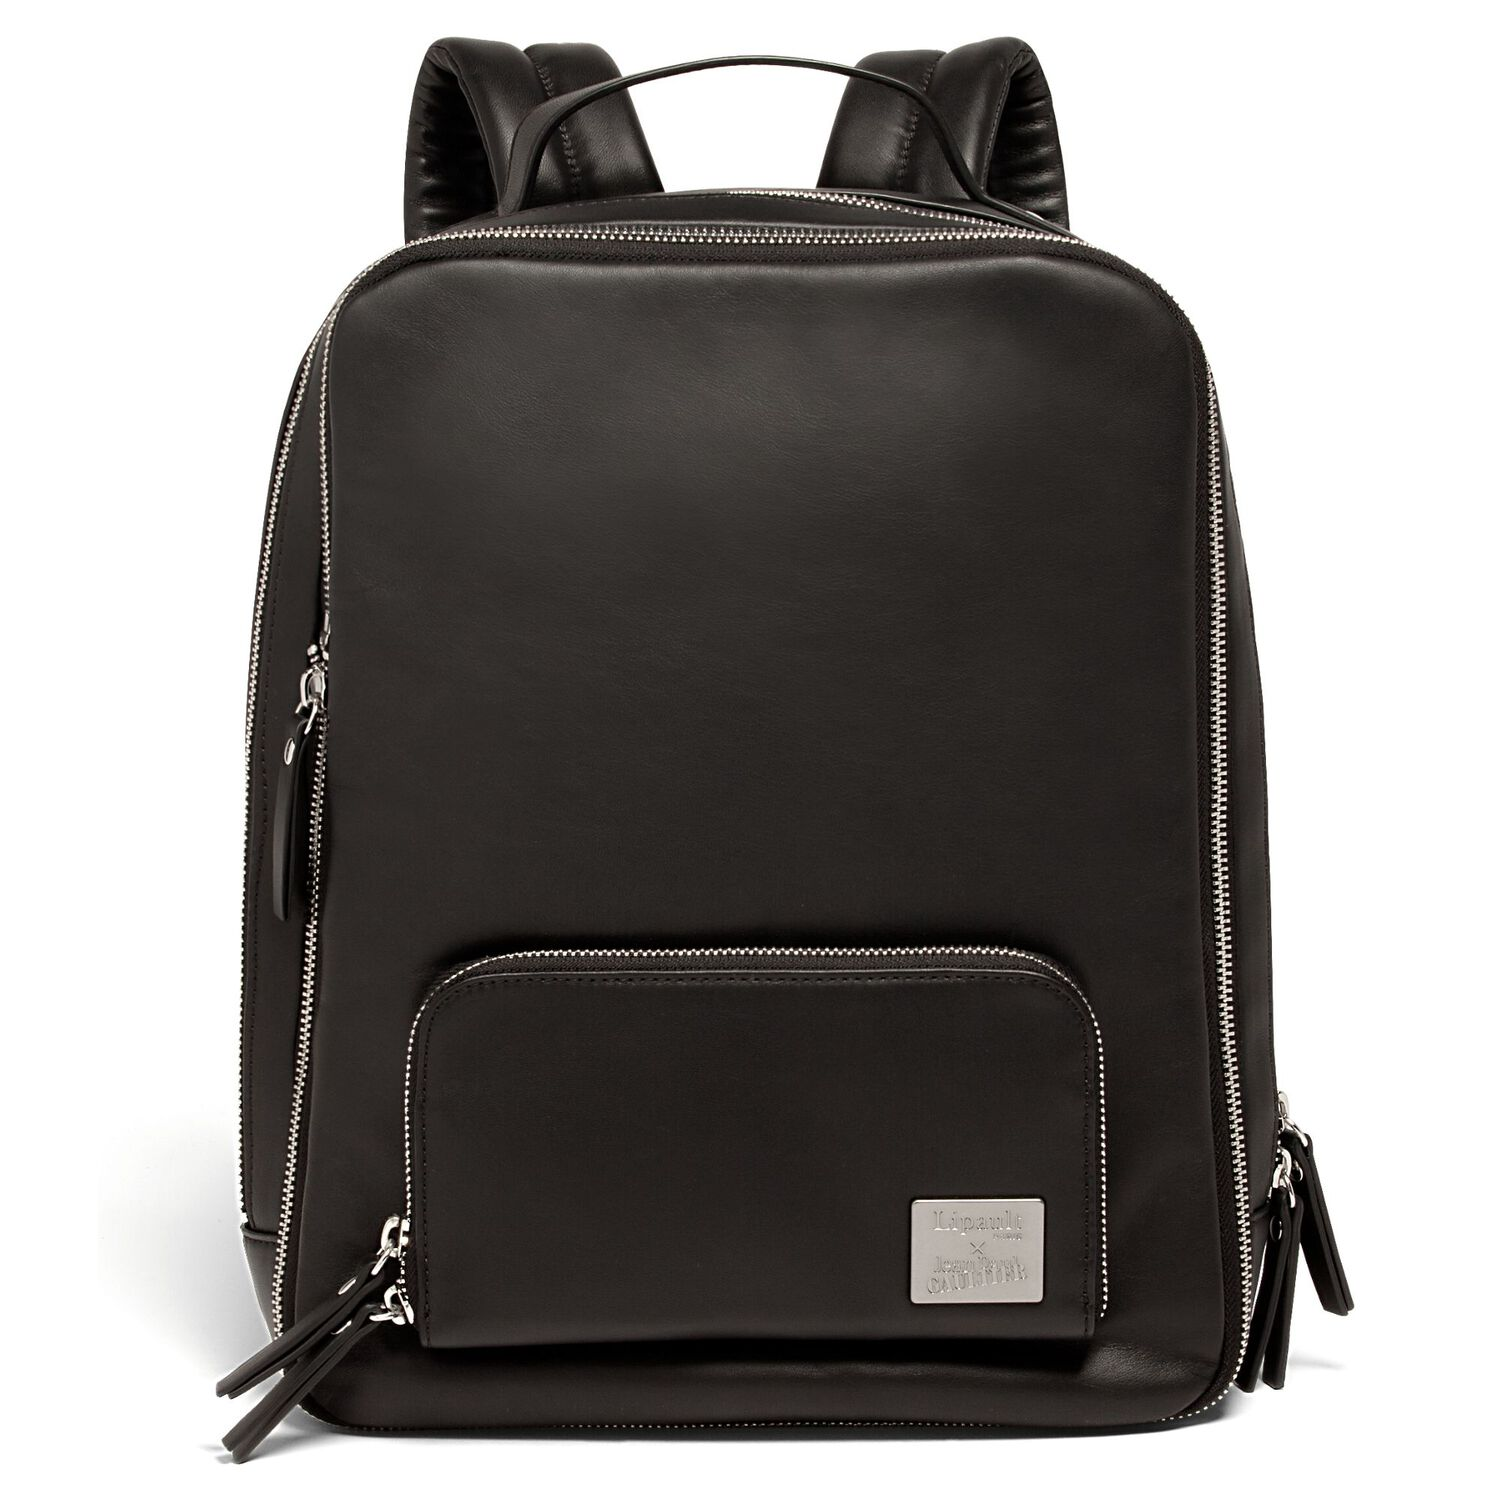 b8b3868254 Lipault Jean Paul Gaultier Mix Backpack M in the color Black.